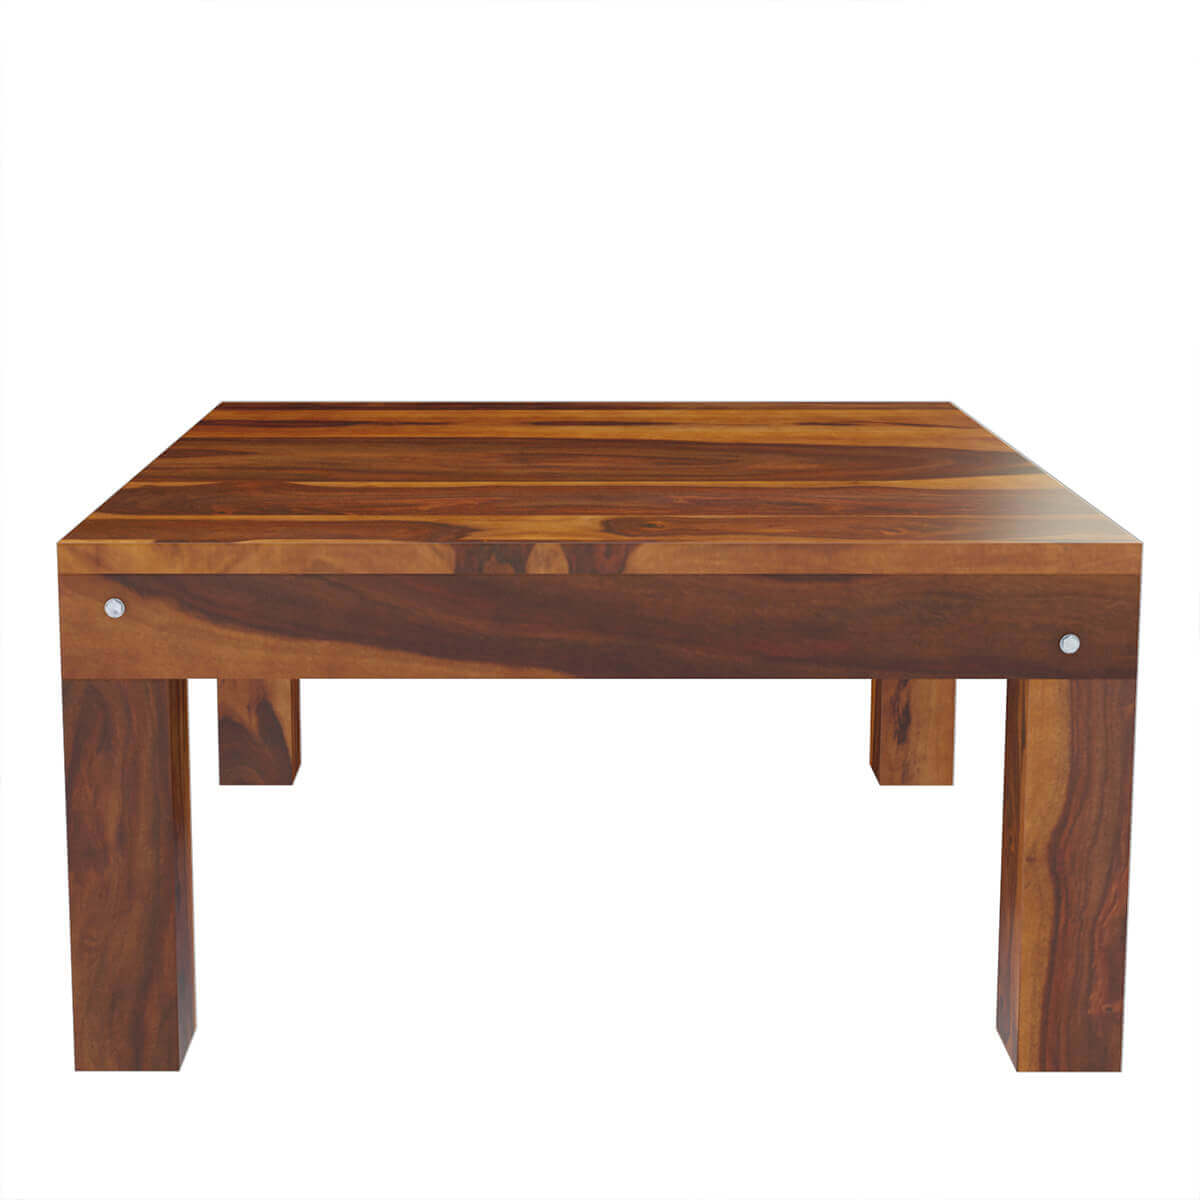 Patet Contemporary Rustic Solid Wood Cocktail Square